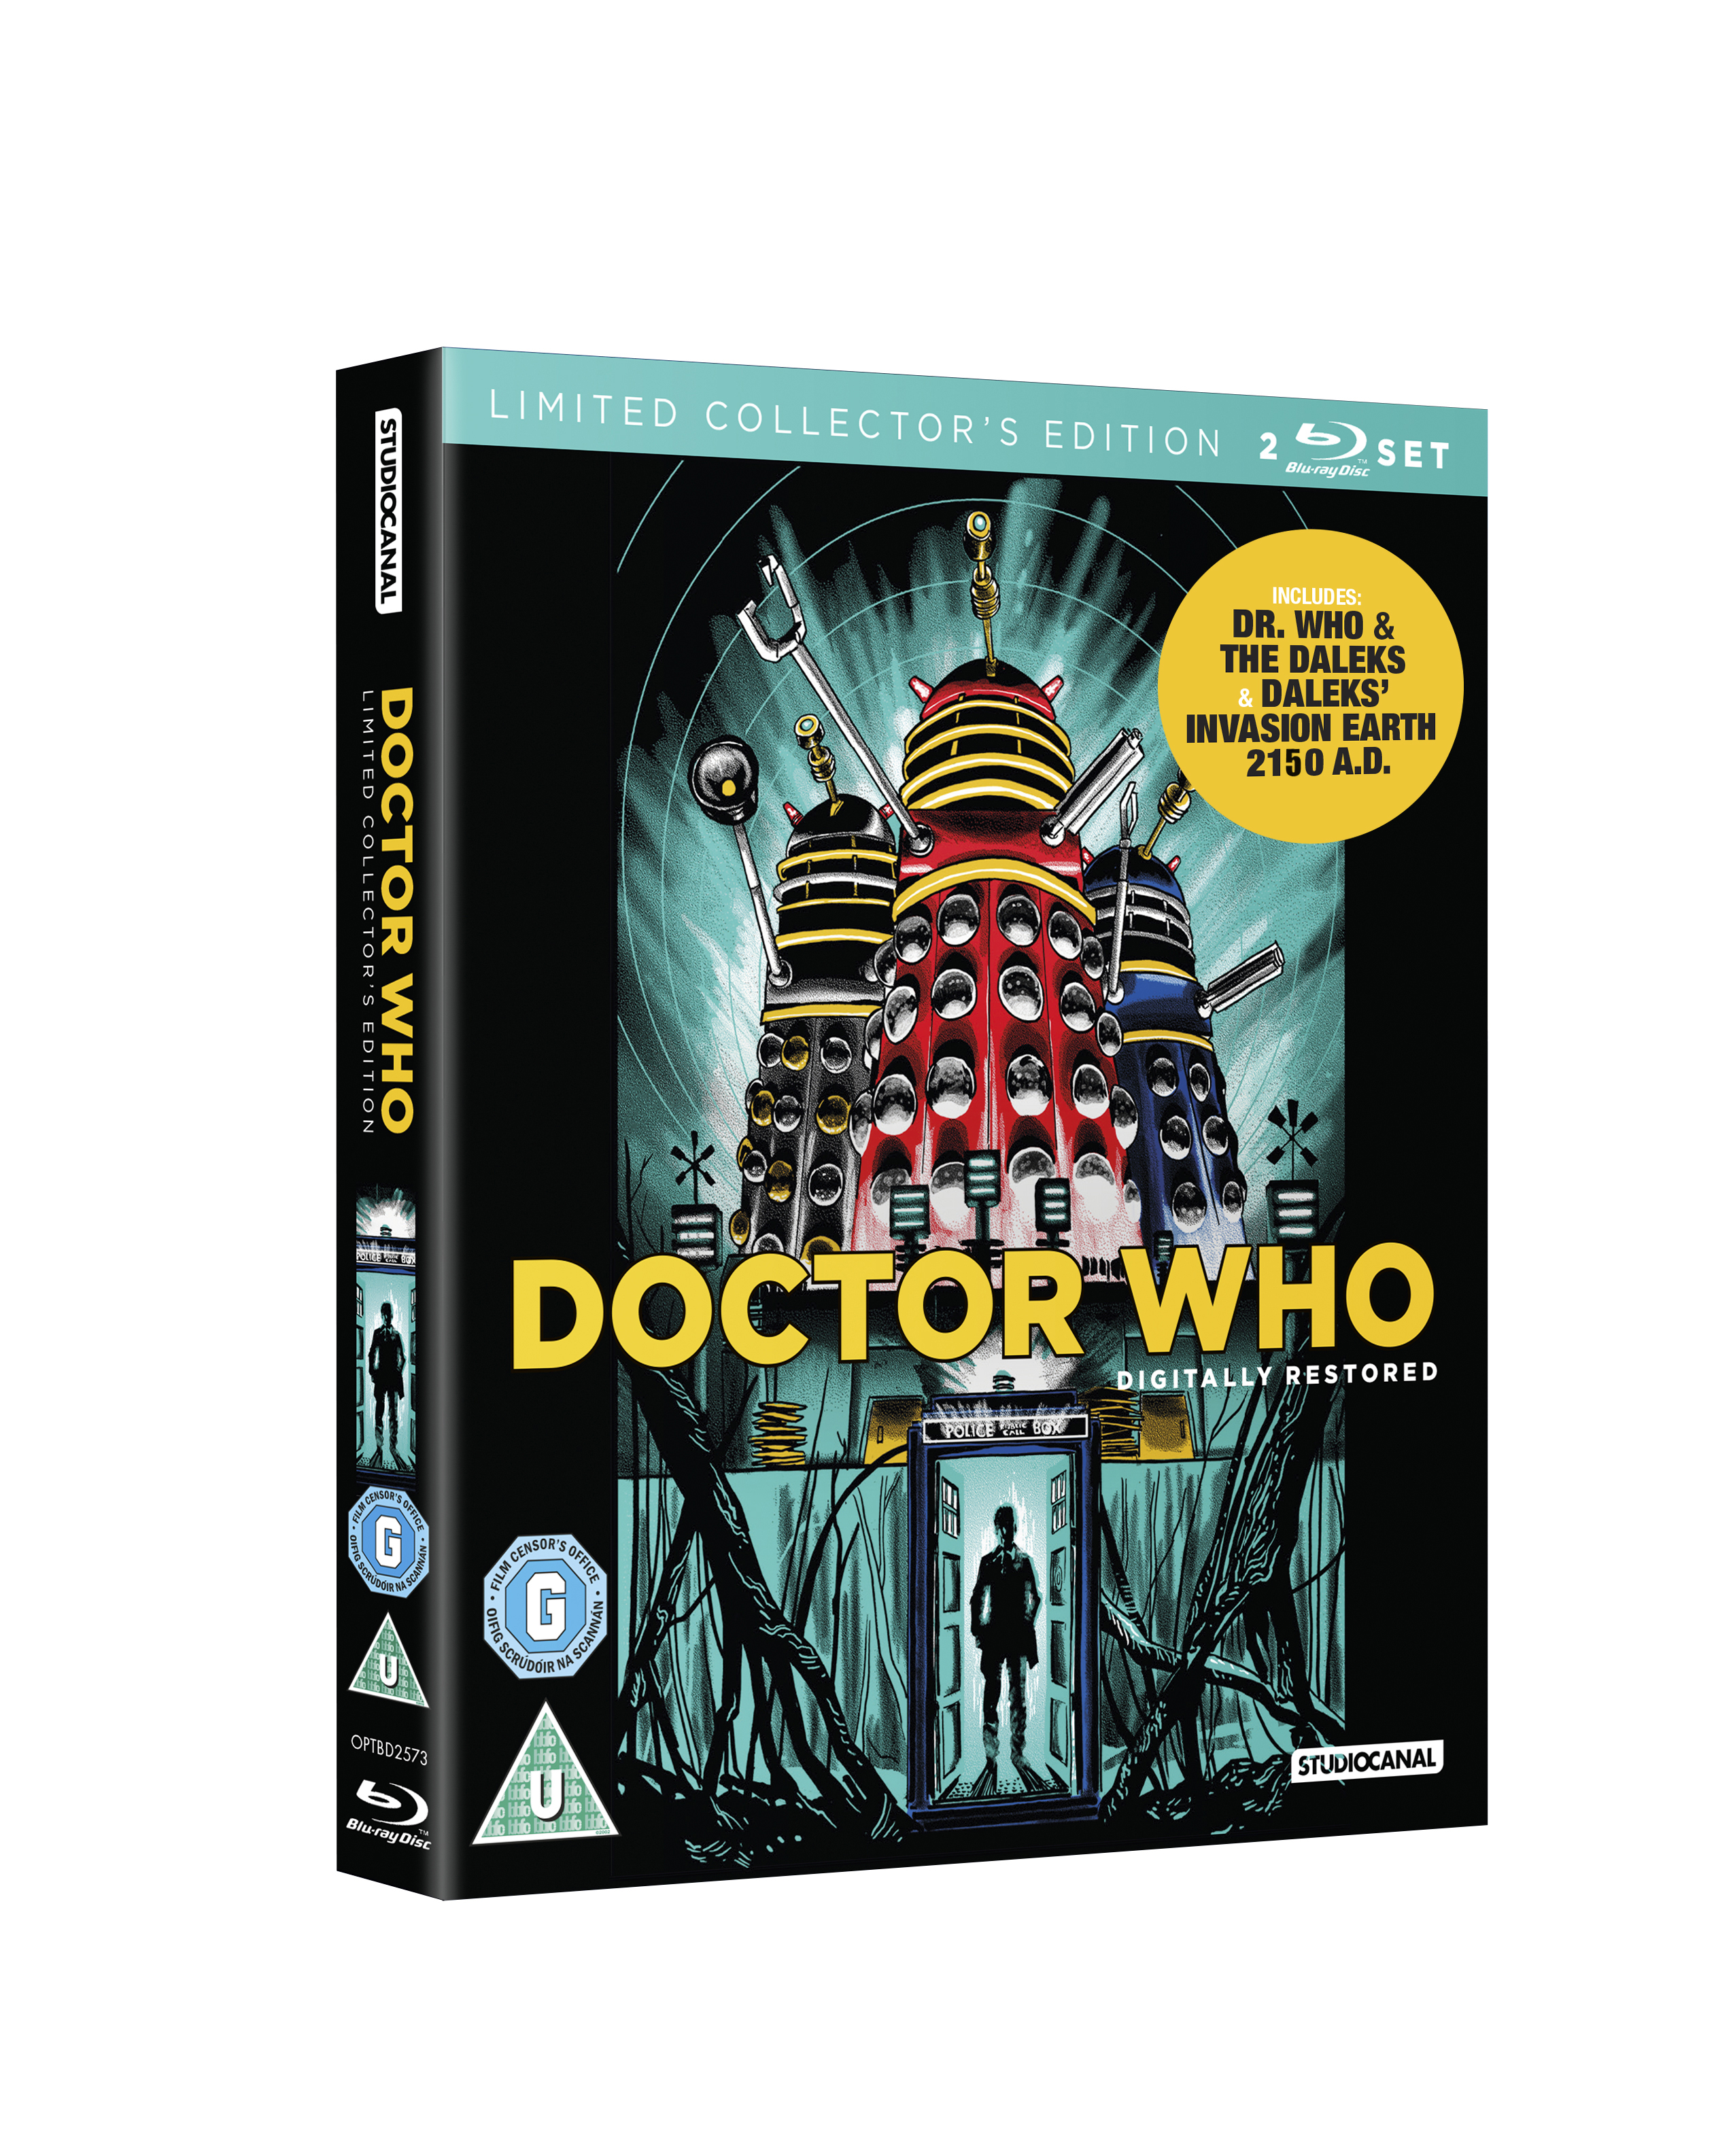 Doctor Who and the Daleks print- now a BLU-RAY cover!